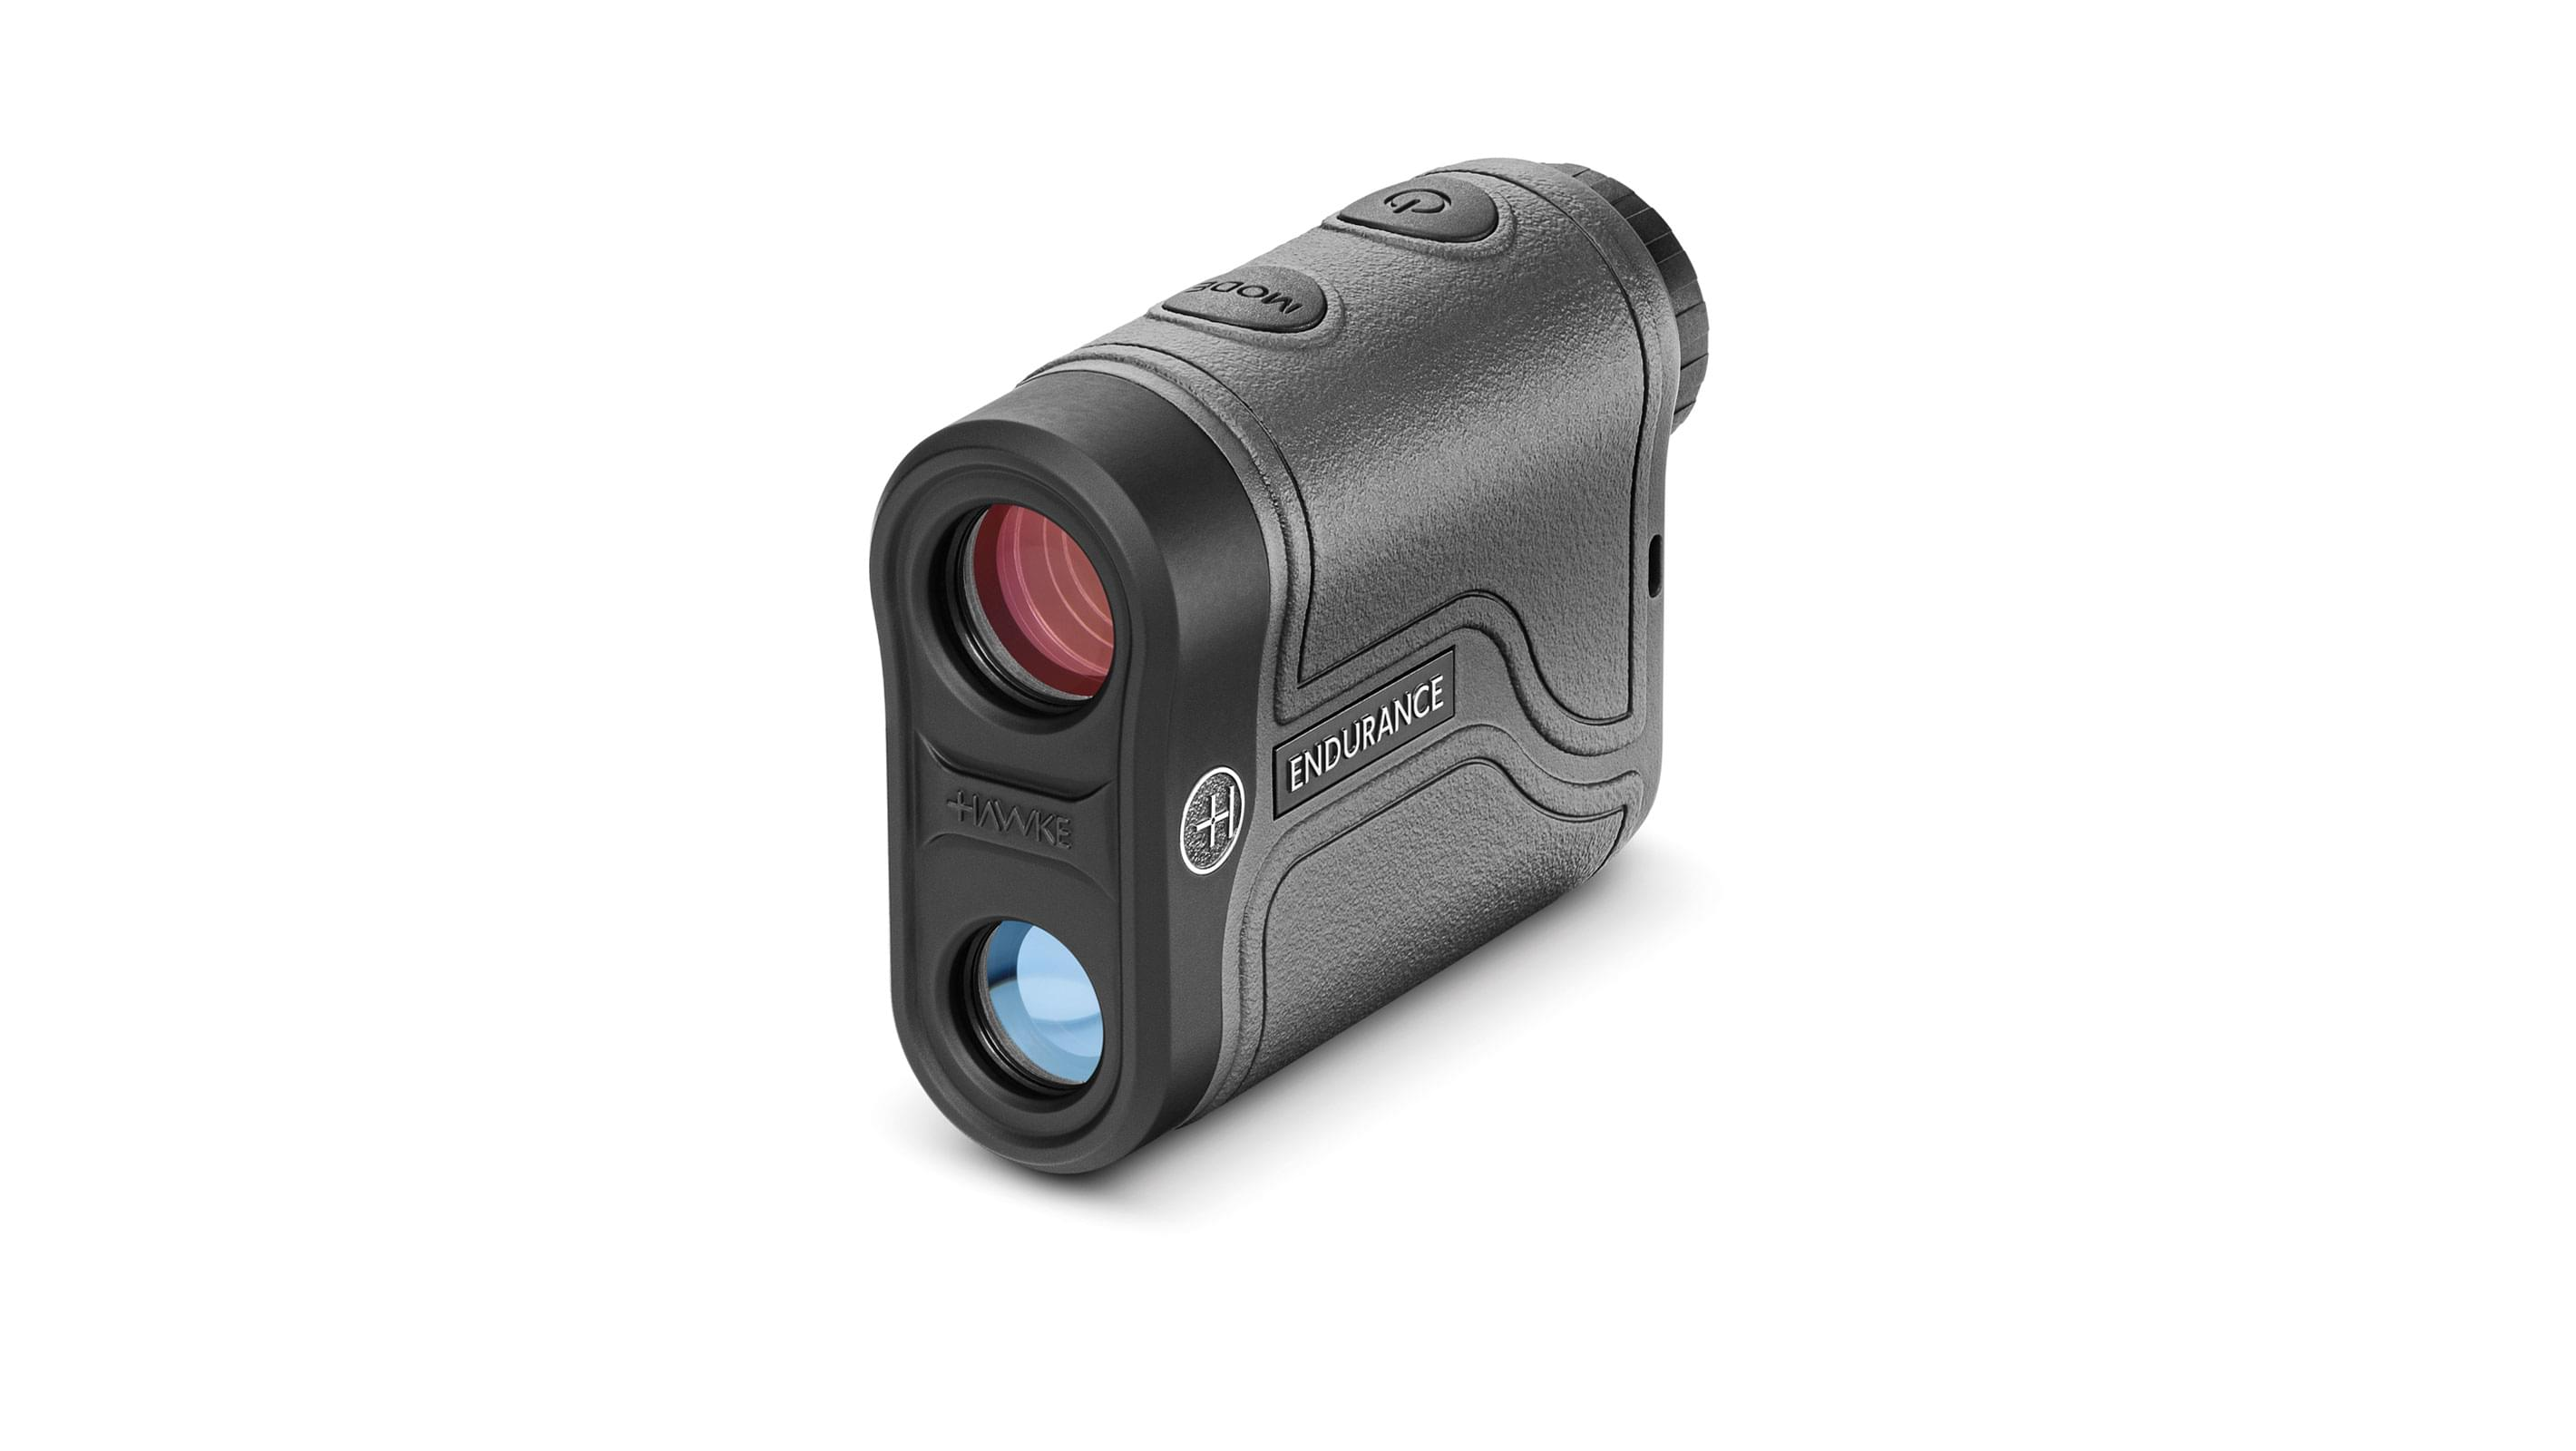 Laser Range Finder Endurance 700